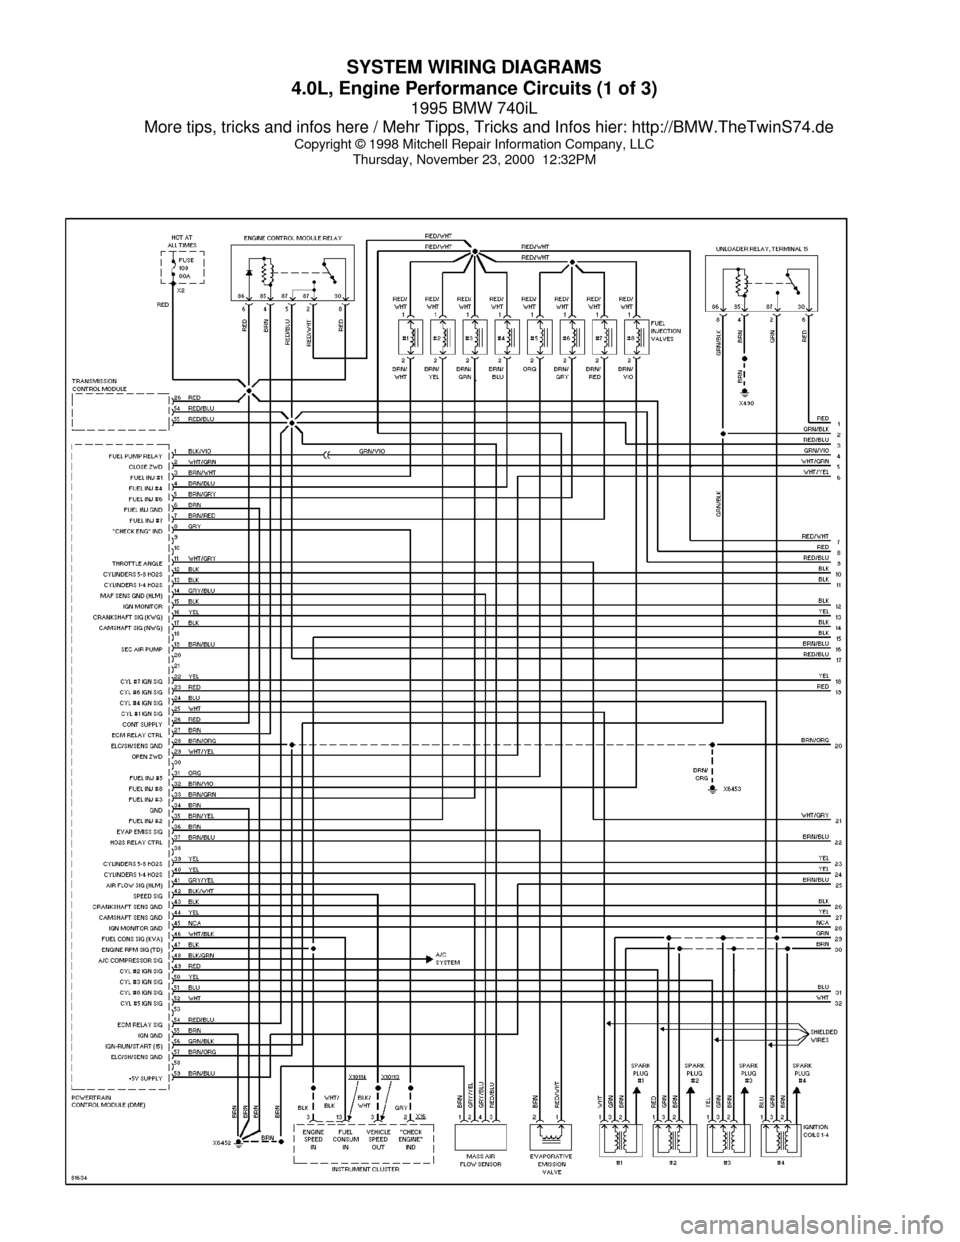 E38 740i Fuse Diagram Wiring Diagrams Bmw 740il 1995 System 1998